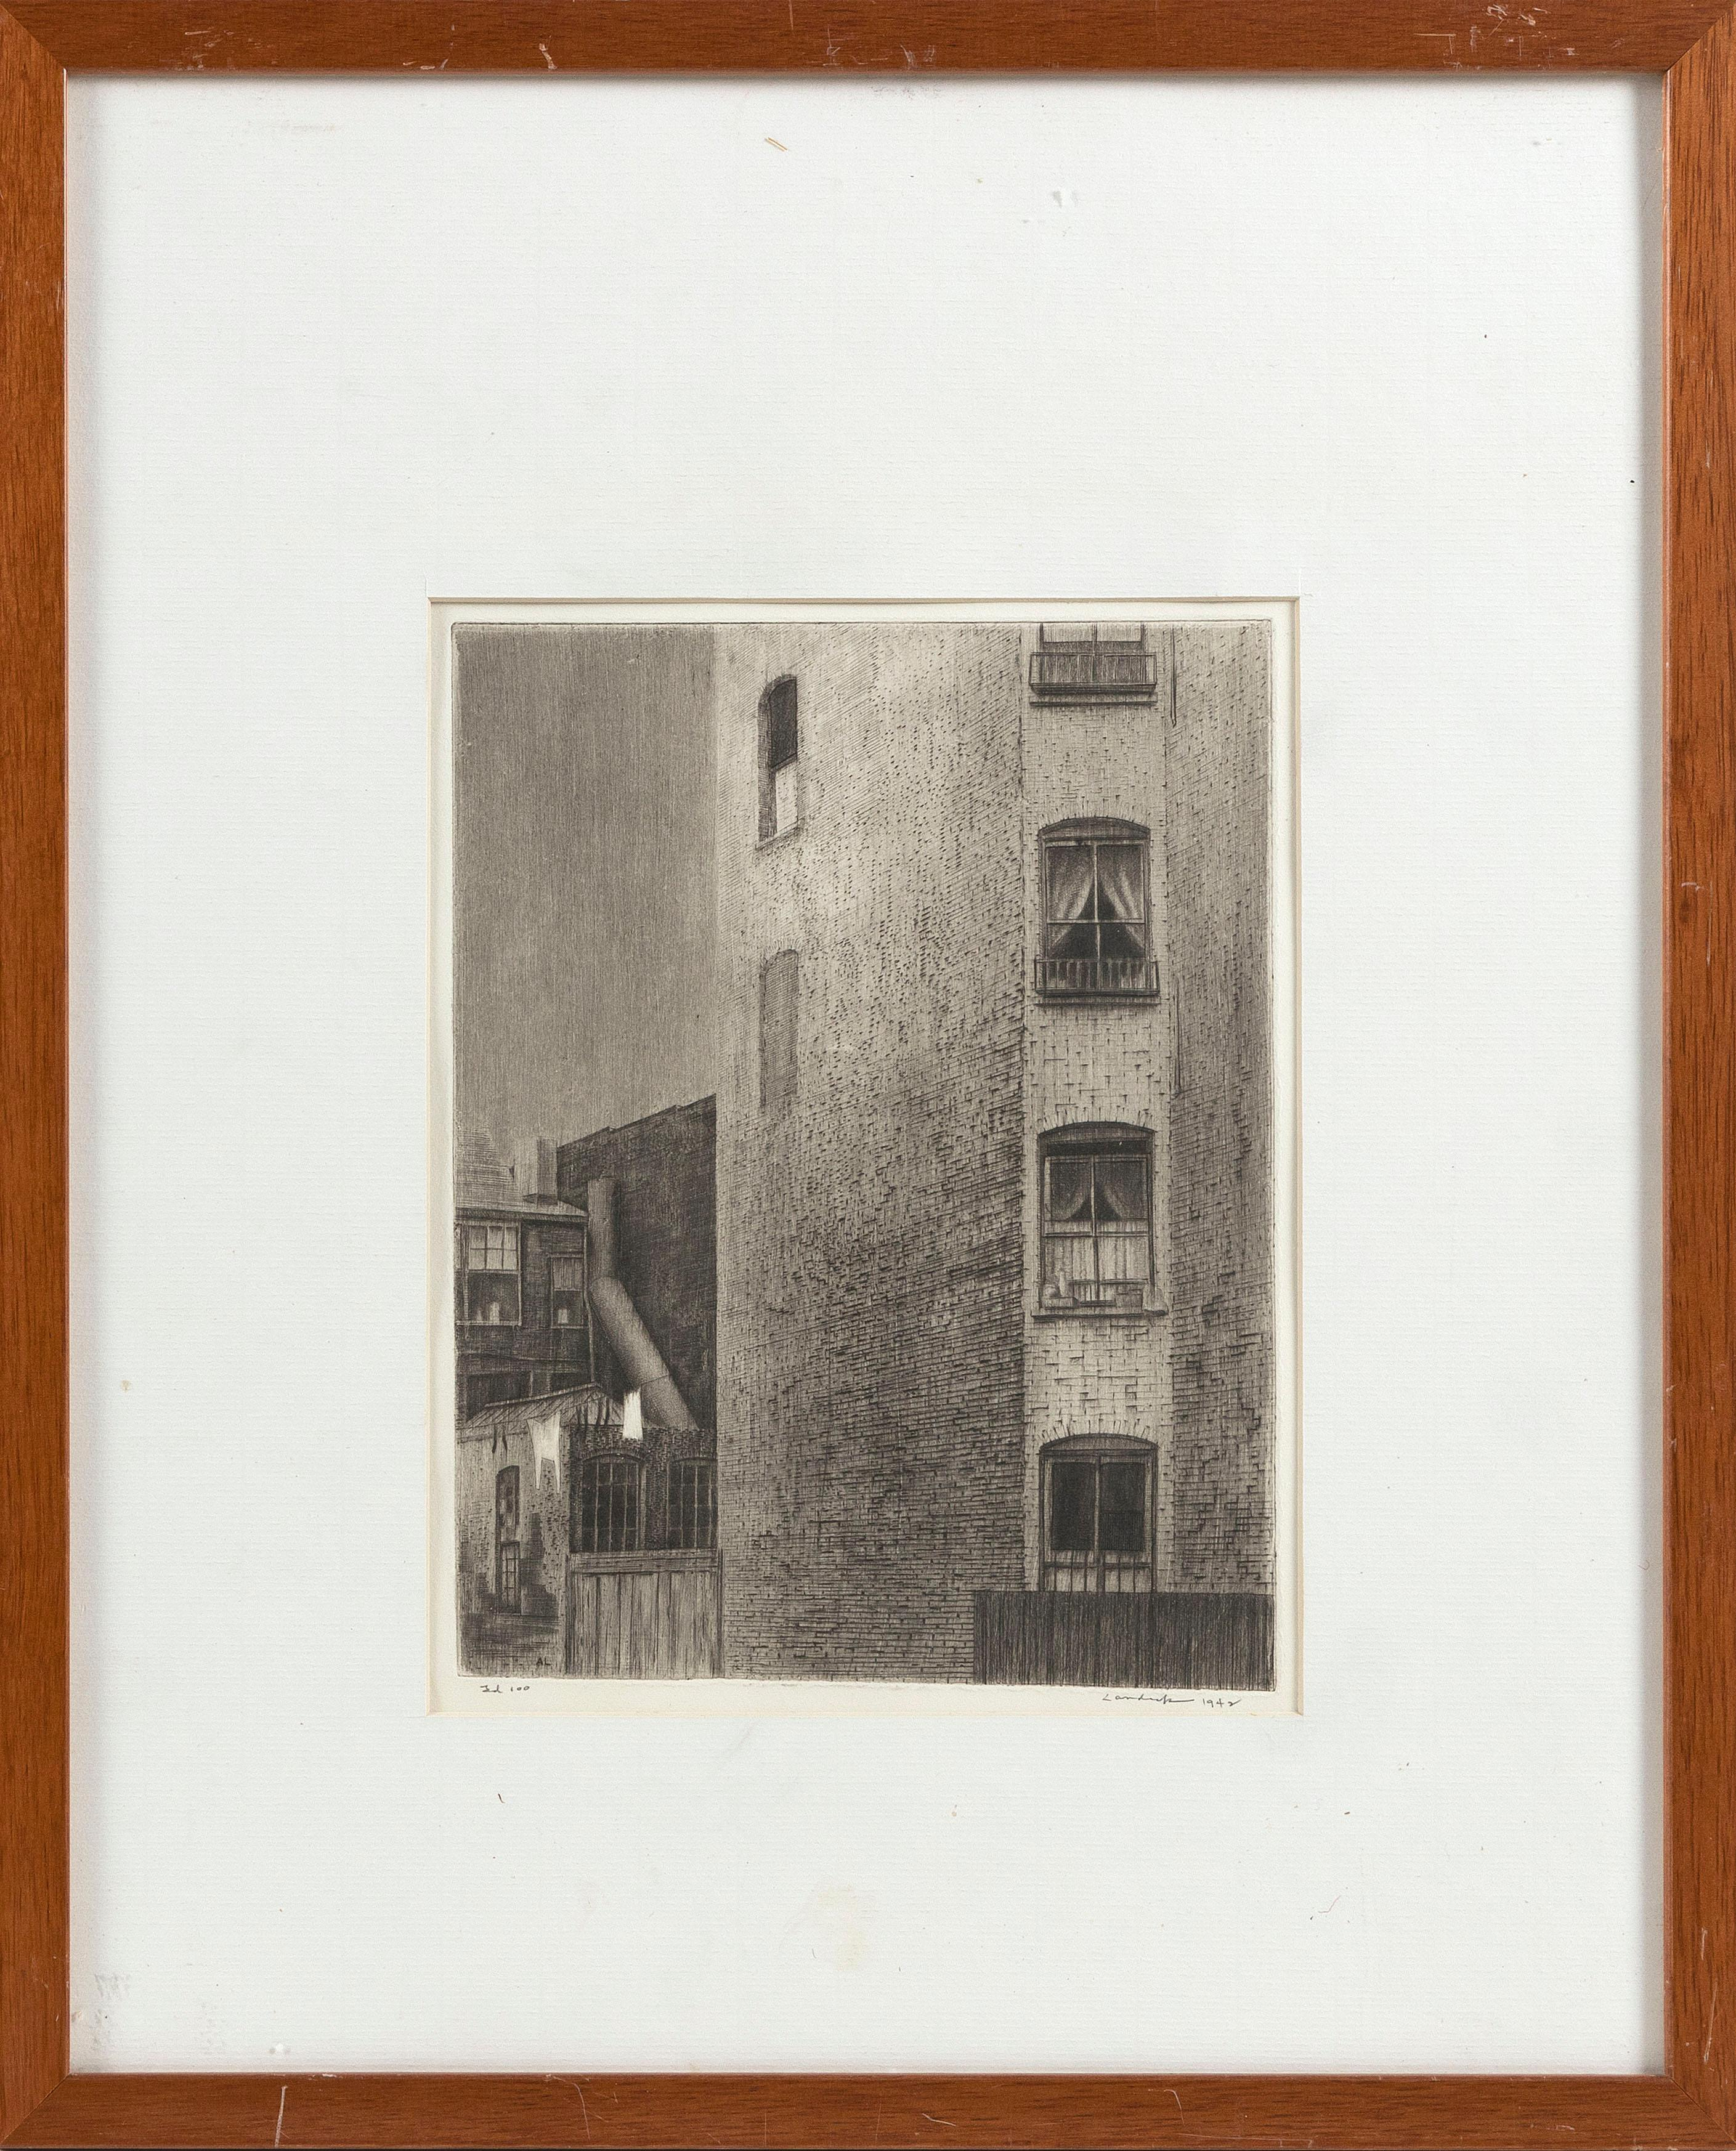 """ARMIN LANDECK (New York/Connecticut/Wisconsin, 1905-1984), """"Tenement Walls""""., Dry point etching, 8"""" x 10.5"""" to the plate line. Framed 21"""" x 17""""."""